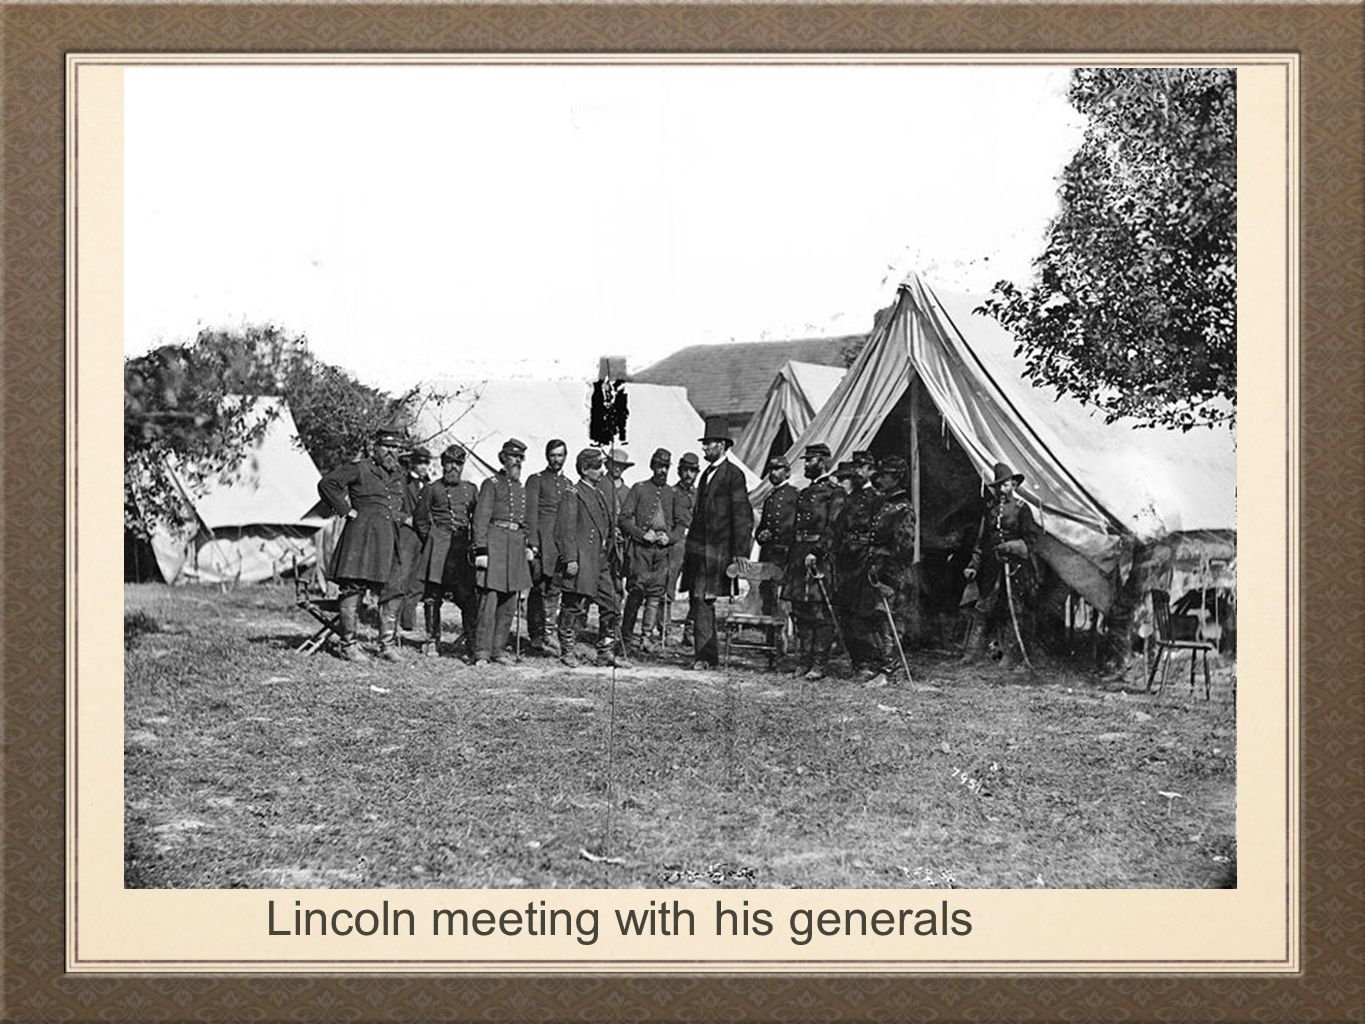 Lincoln meeting with his generals